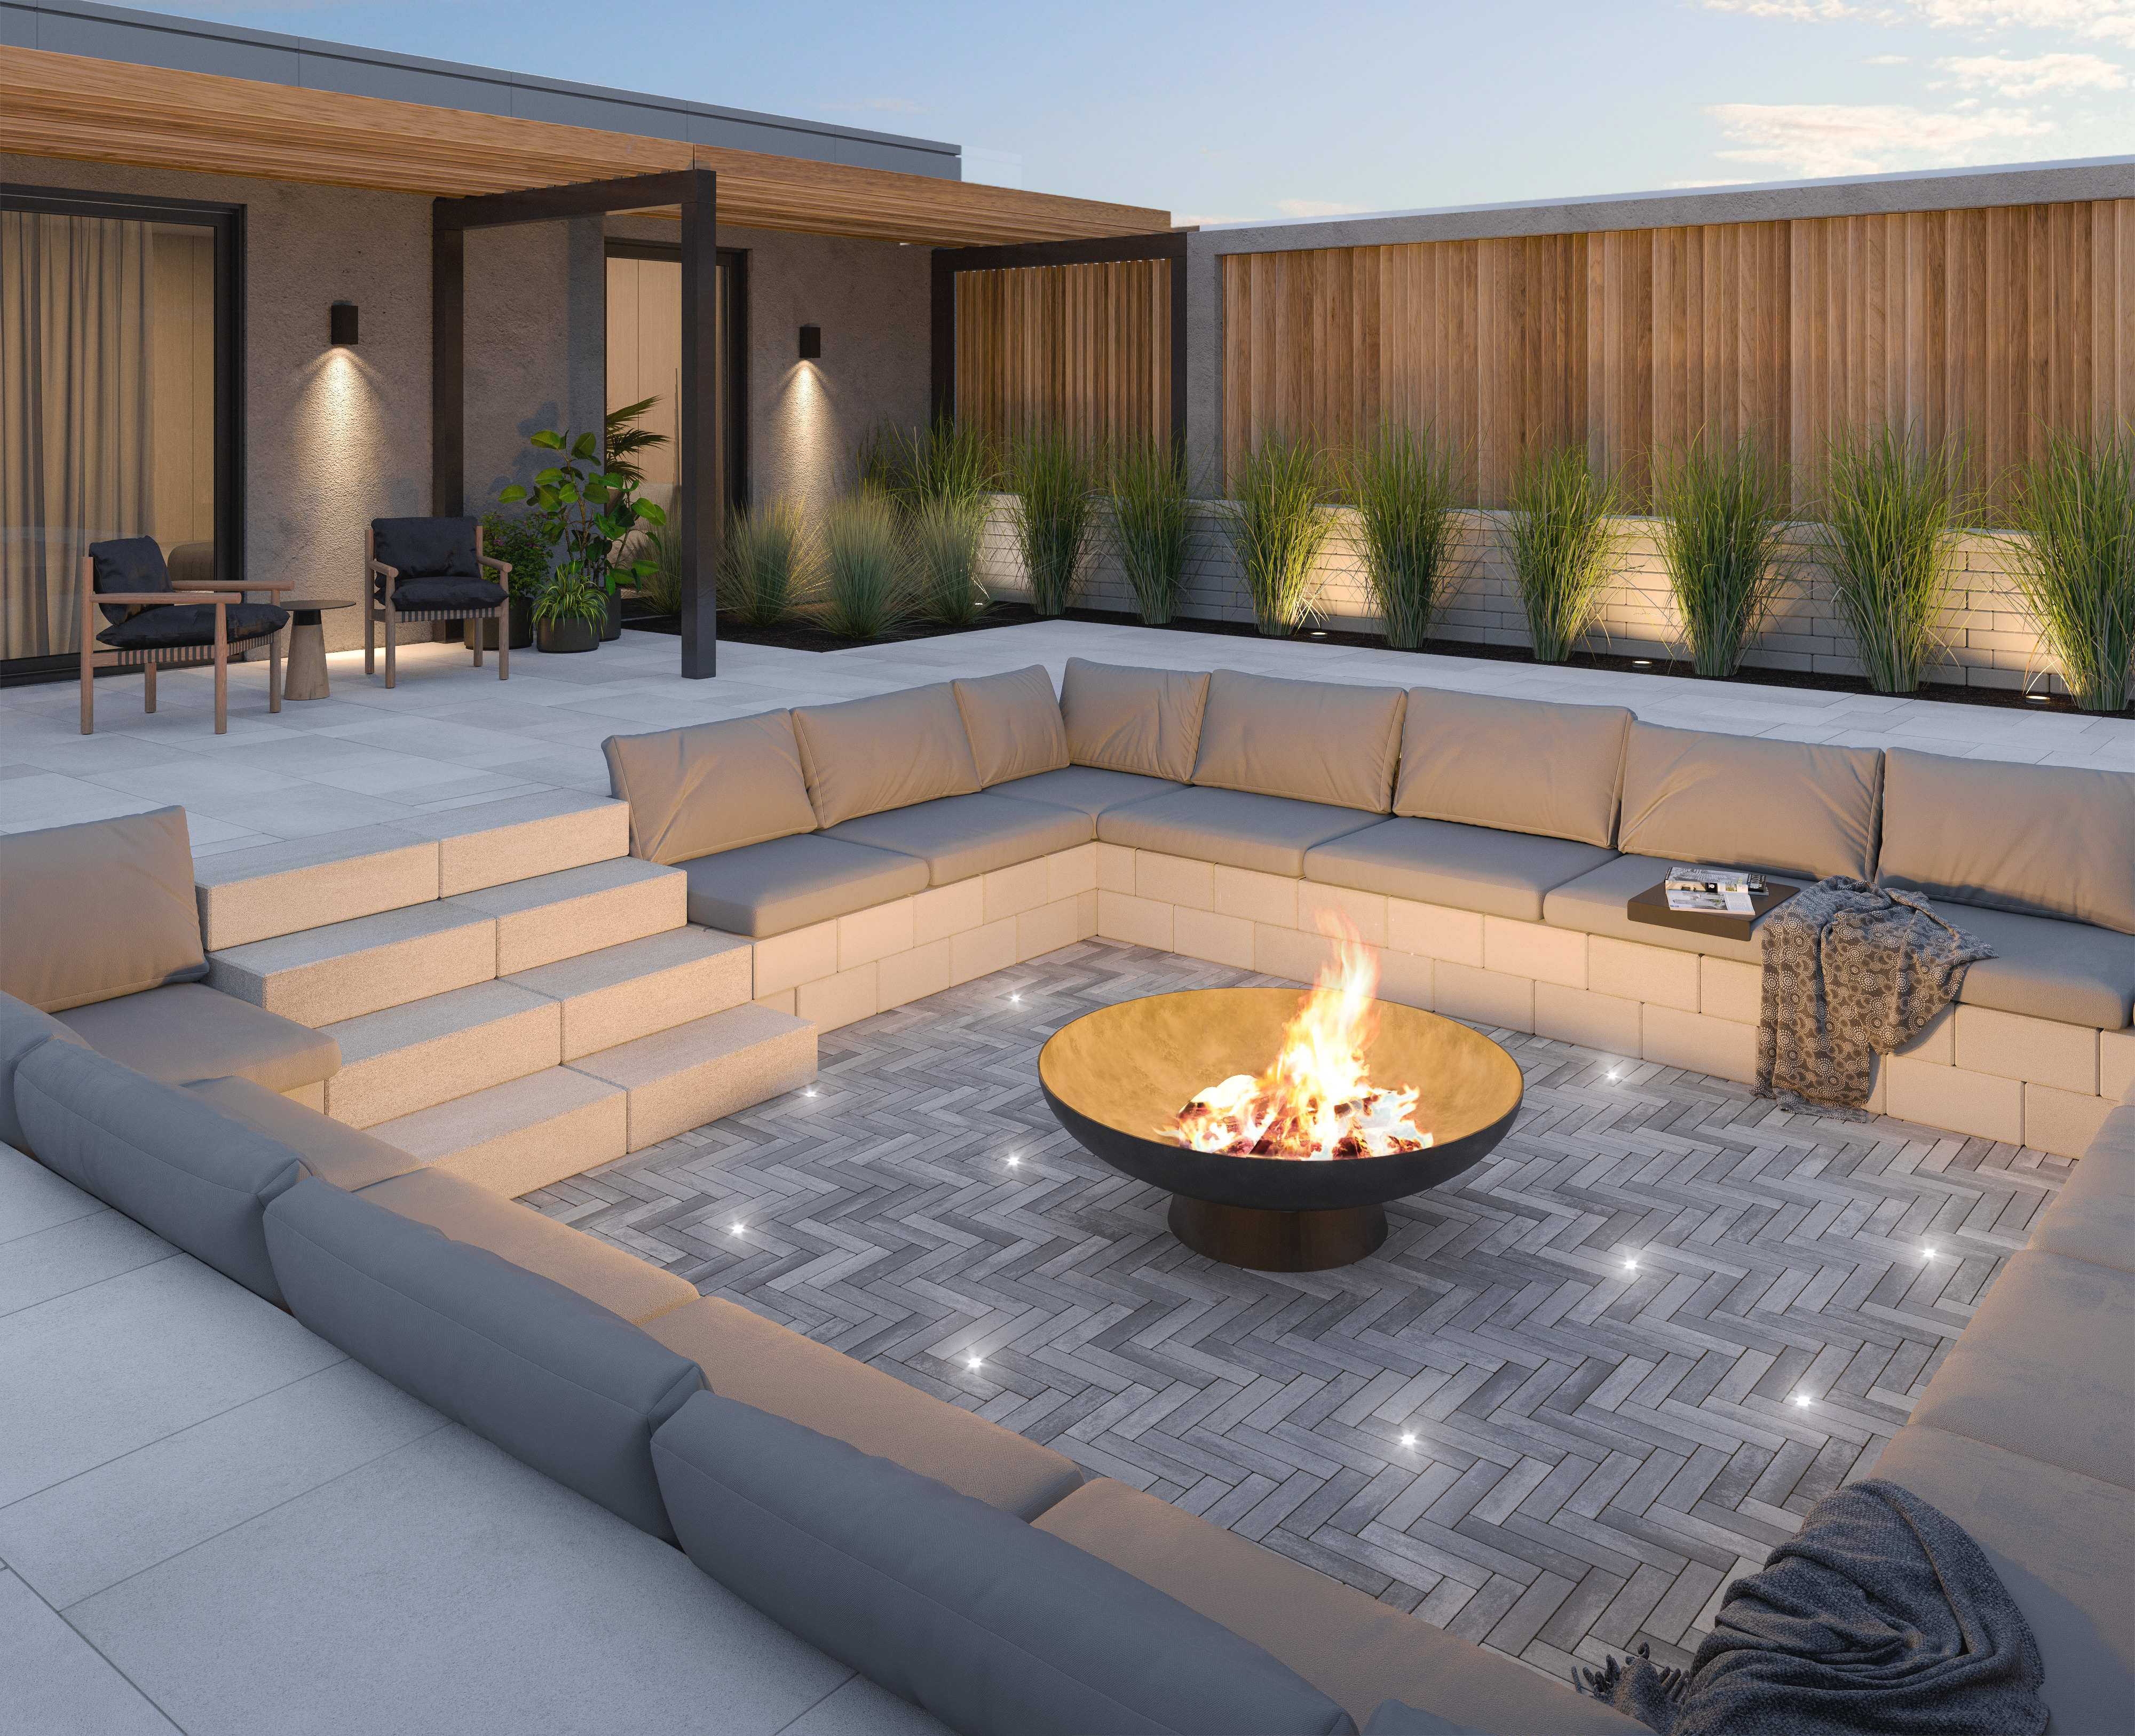 Paver : Westmount in Shale Grey